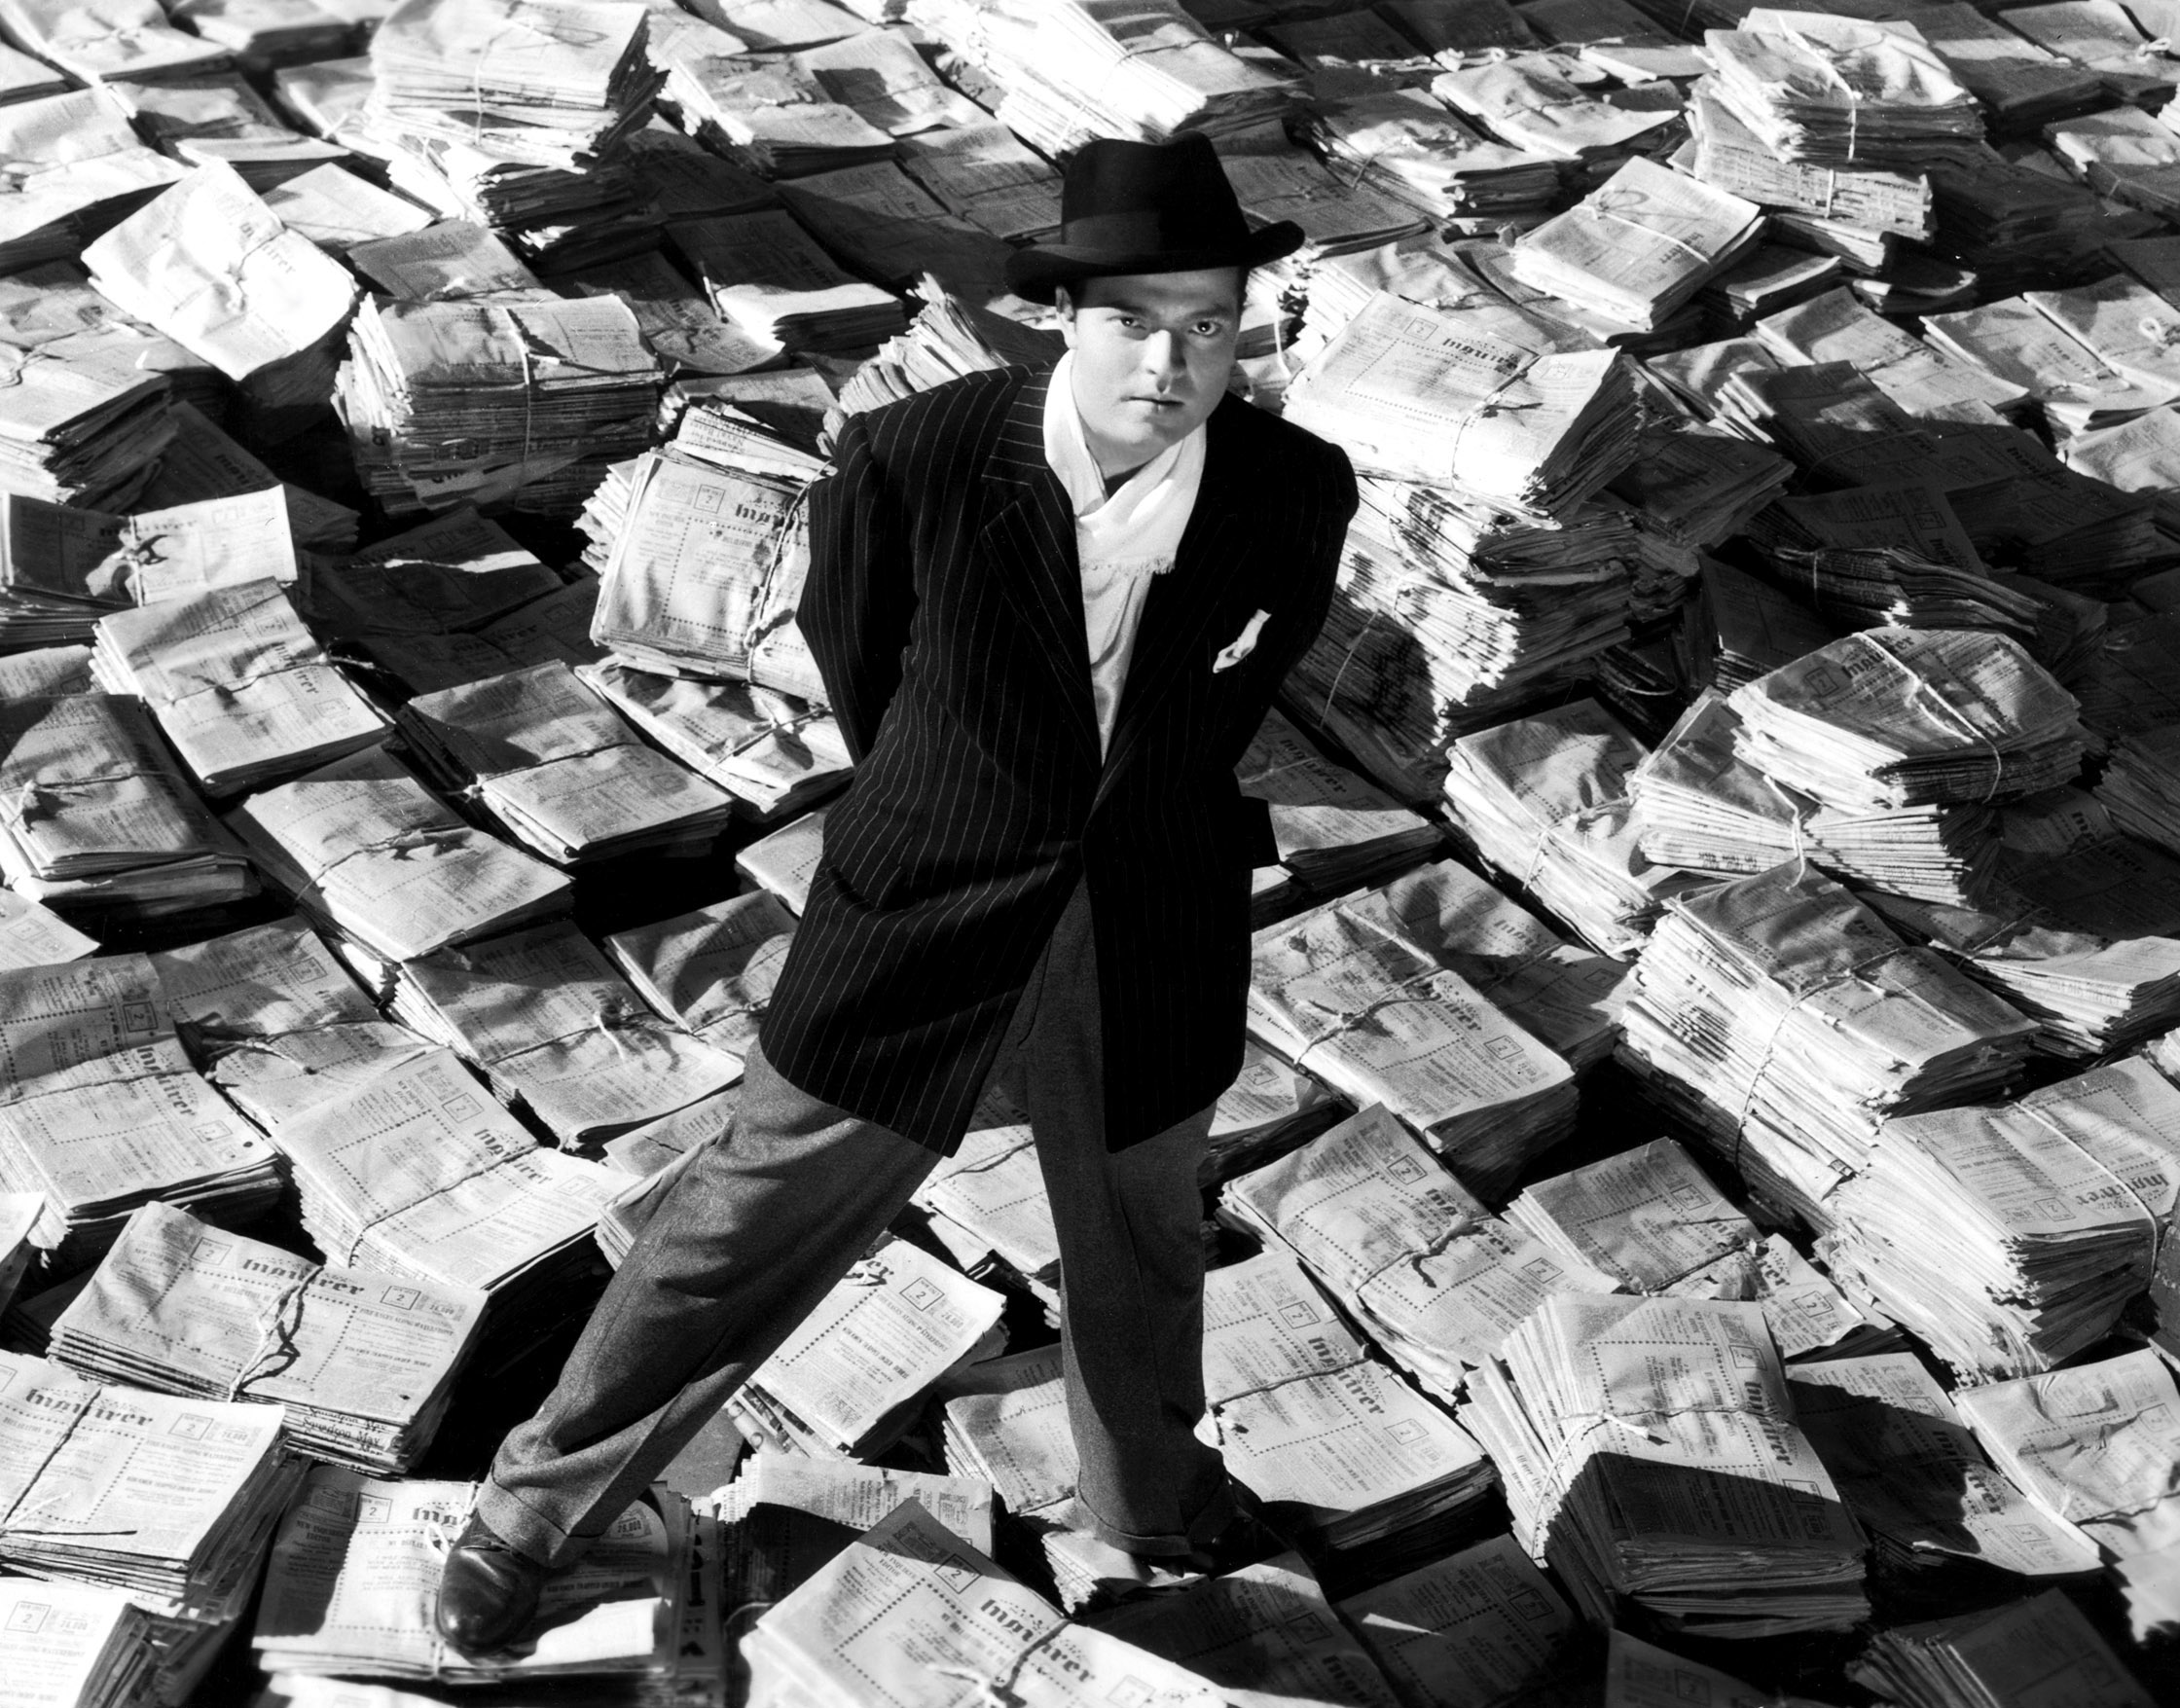 citizen kane american dream essay This is perhaps the oddest inclusion on this list, as it is in many ways the perfect example of the american dream gone right an average man gets a one in a million chance at a better life.